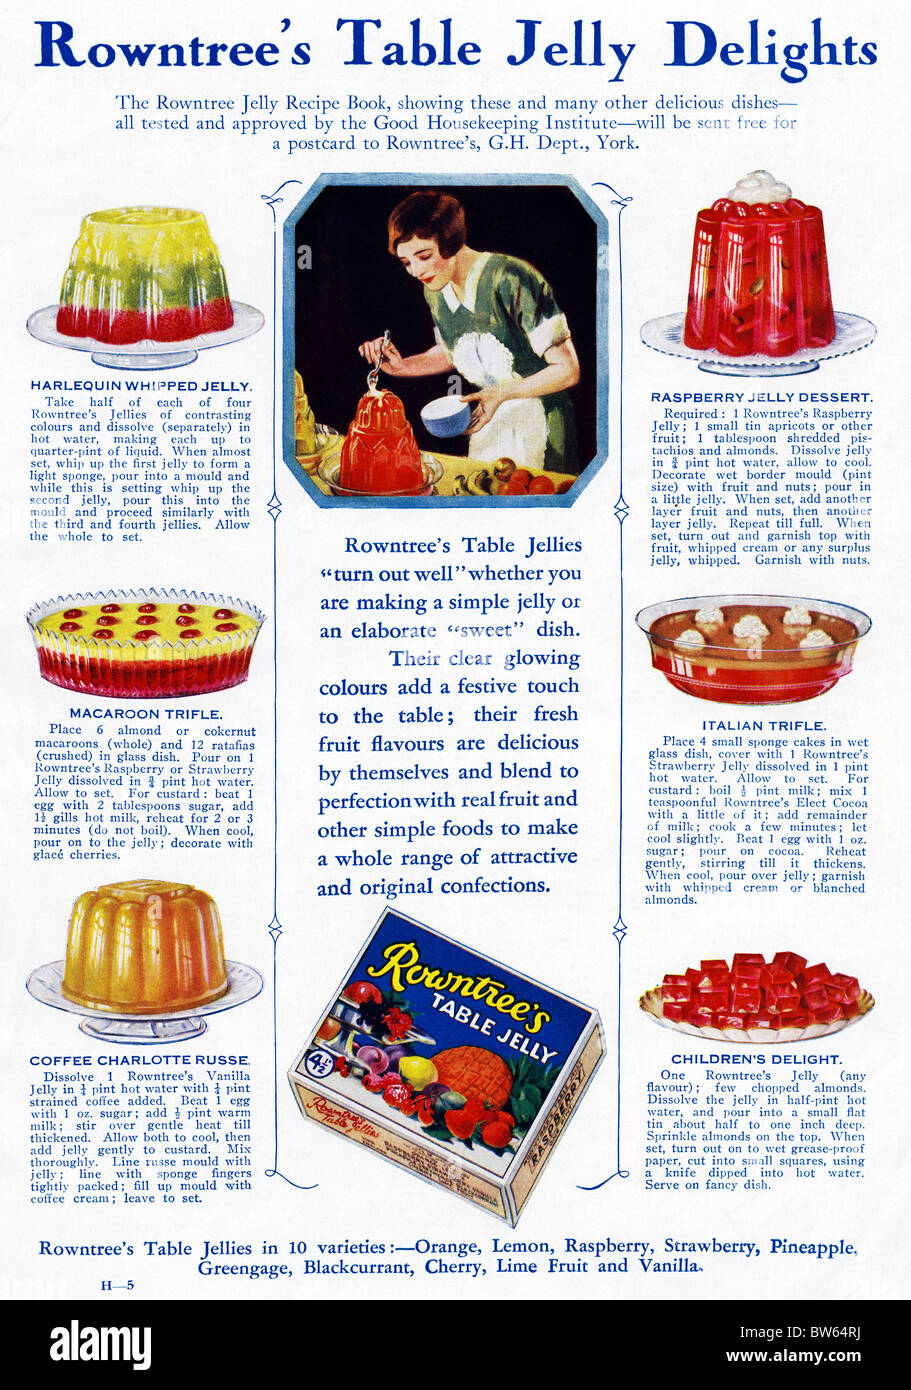 1920s Uk Rowntrees Magazine Advert Stock Photos & 1920s Uk Rowntrees